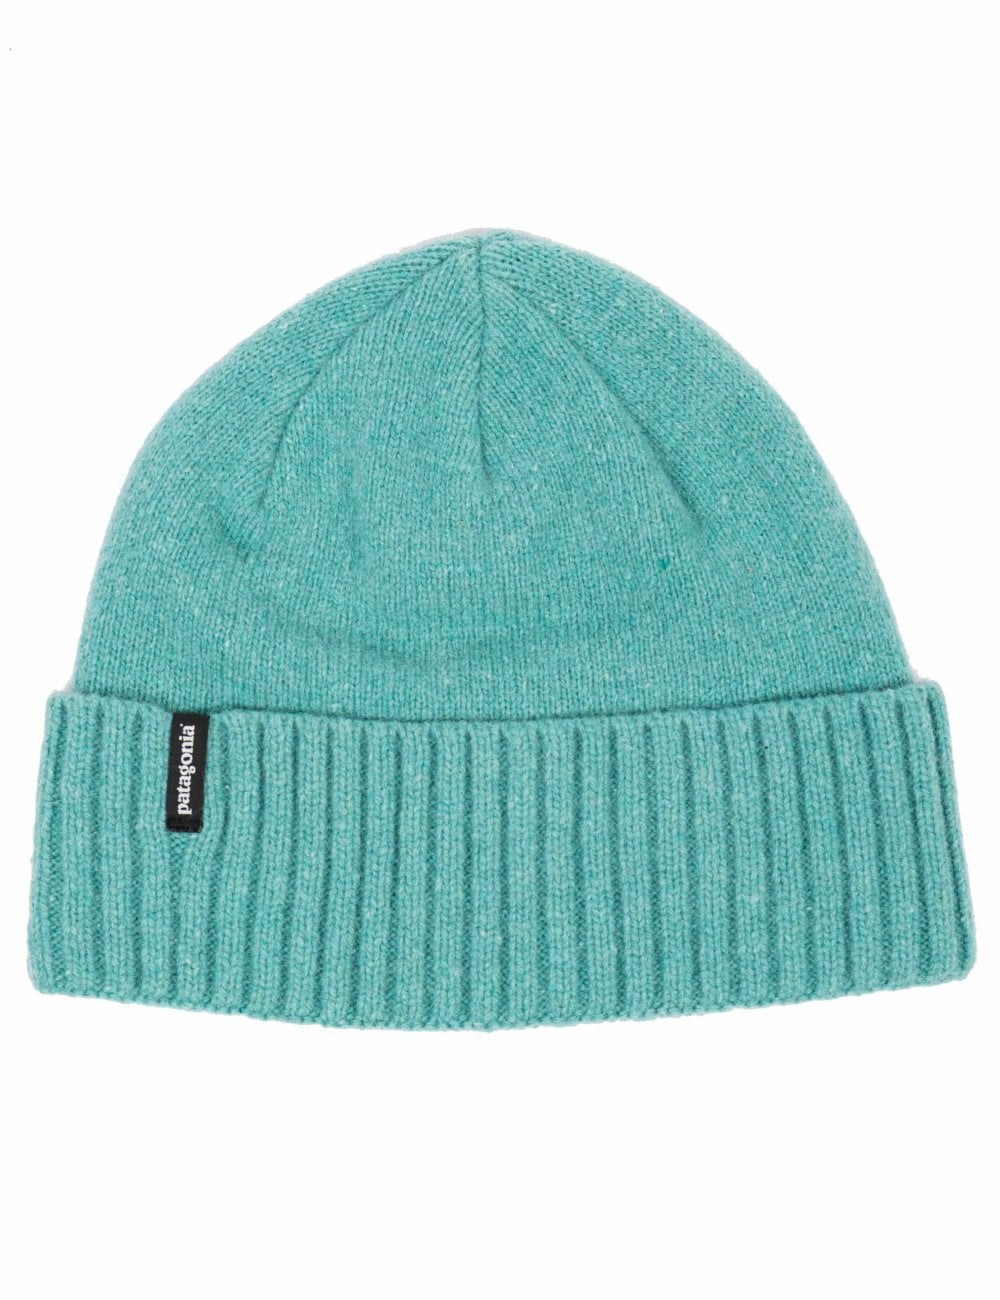 3c464a2f5346d Patagonia Brodeo Beanie Hat - Beryl Green - Accessories from Fat ...